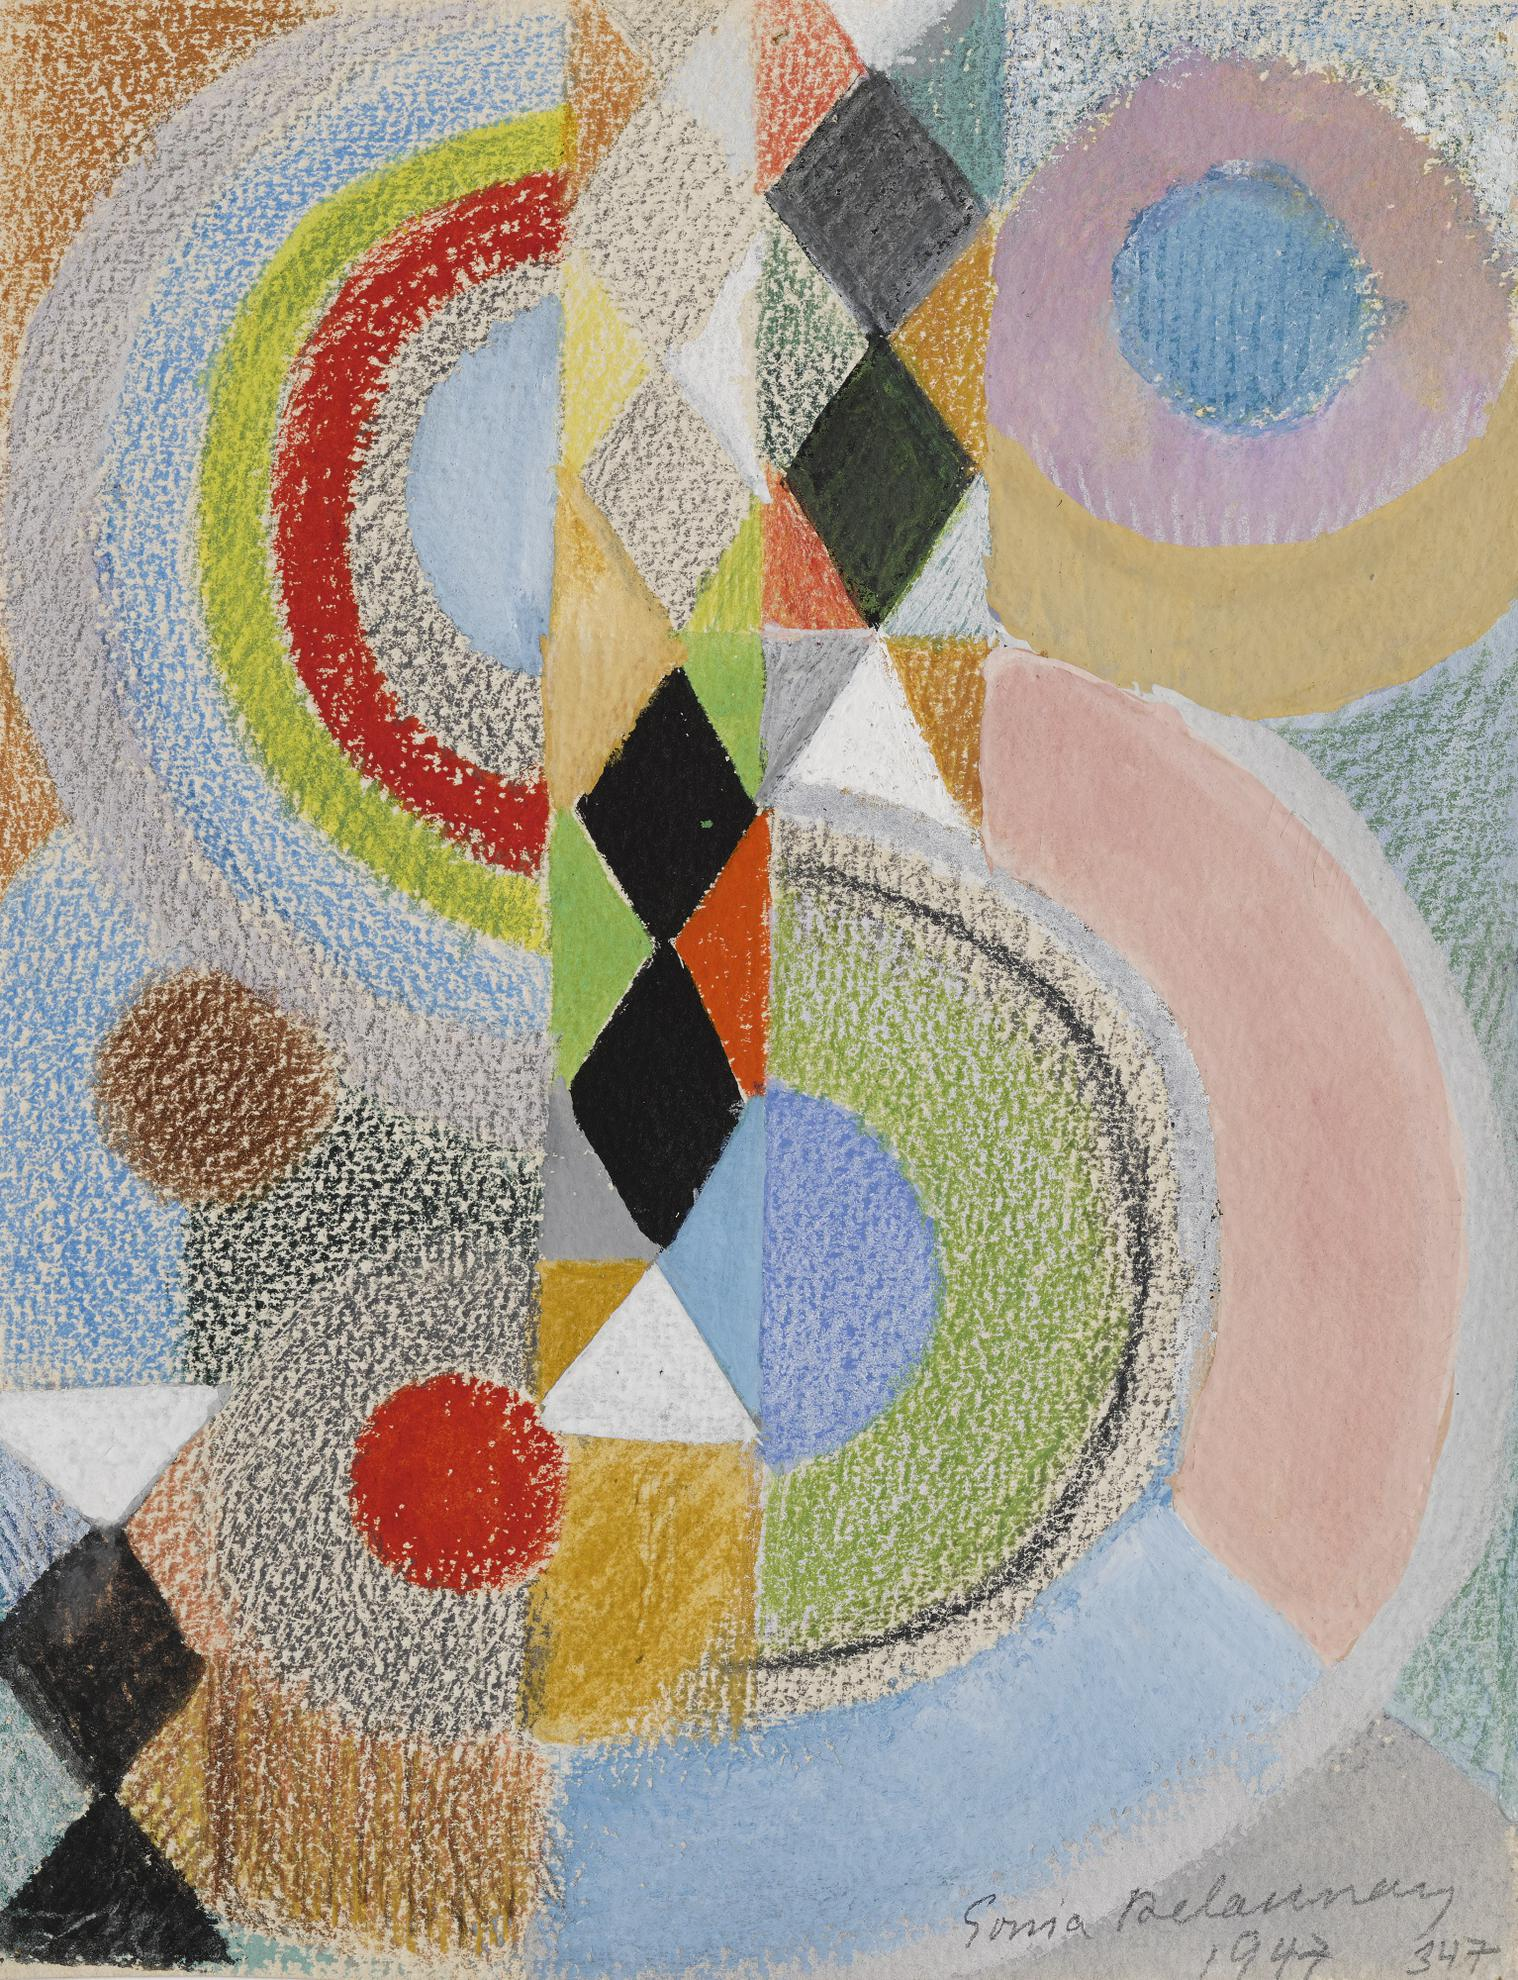 Sonia Delaunay-Rythme Couleur, No. 347-1947